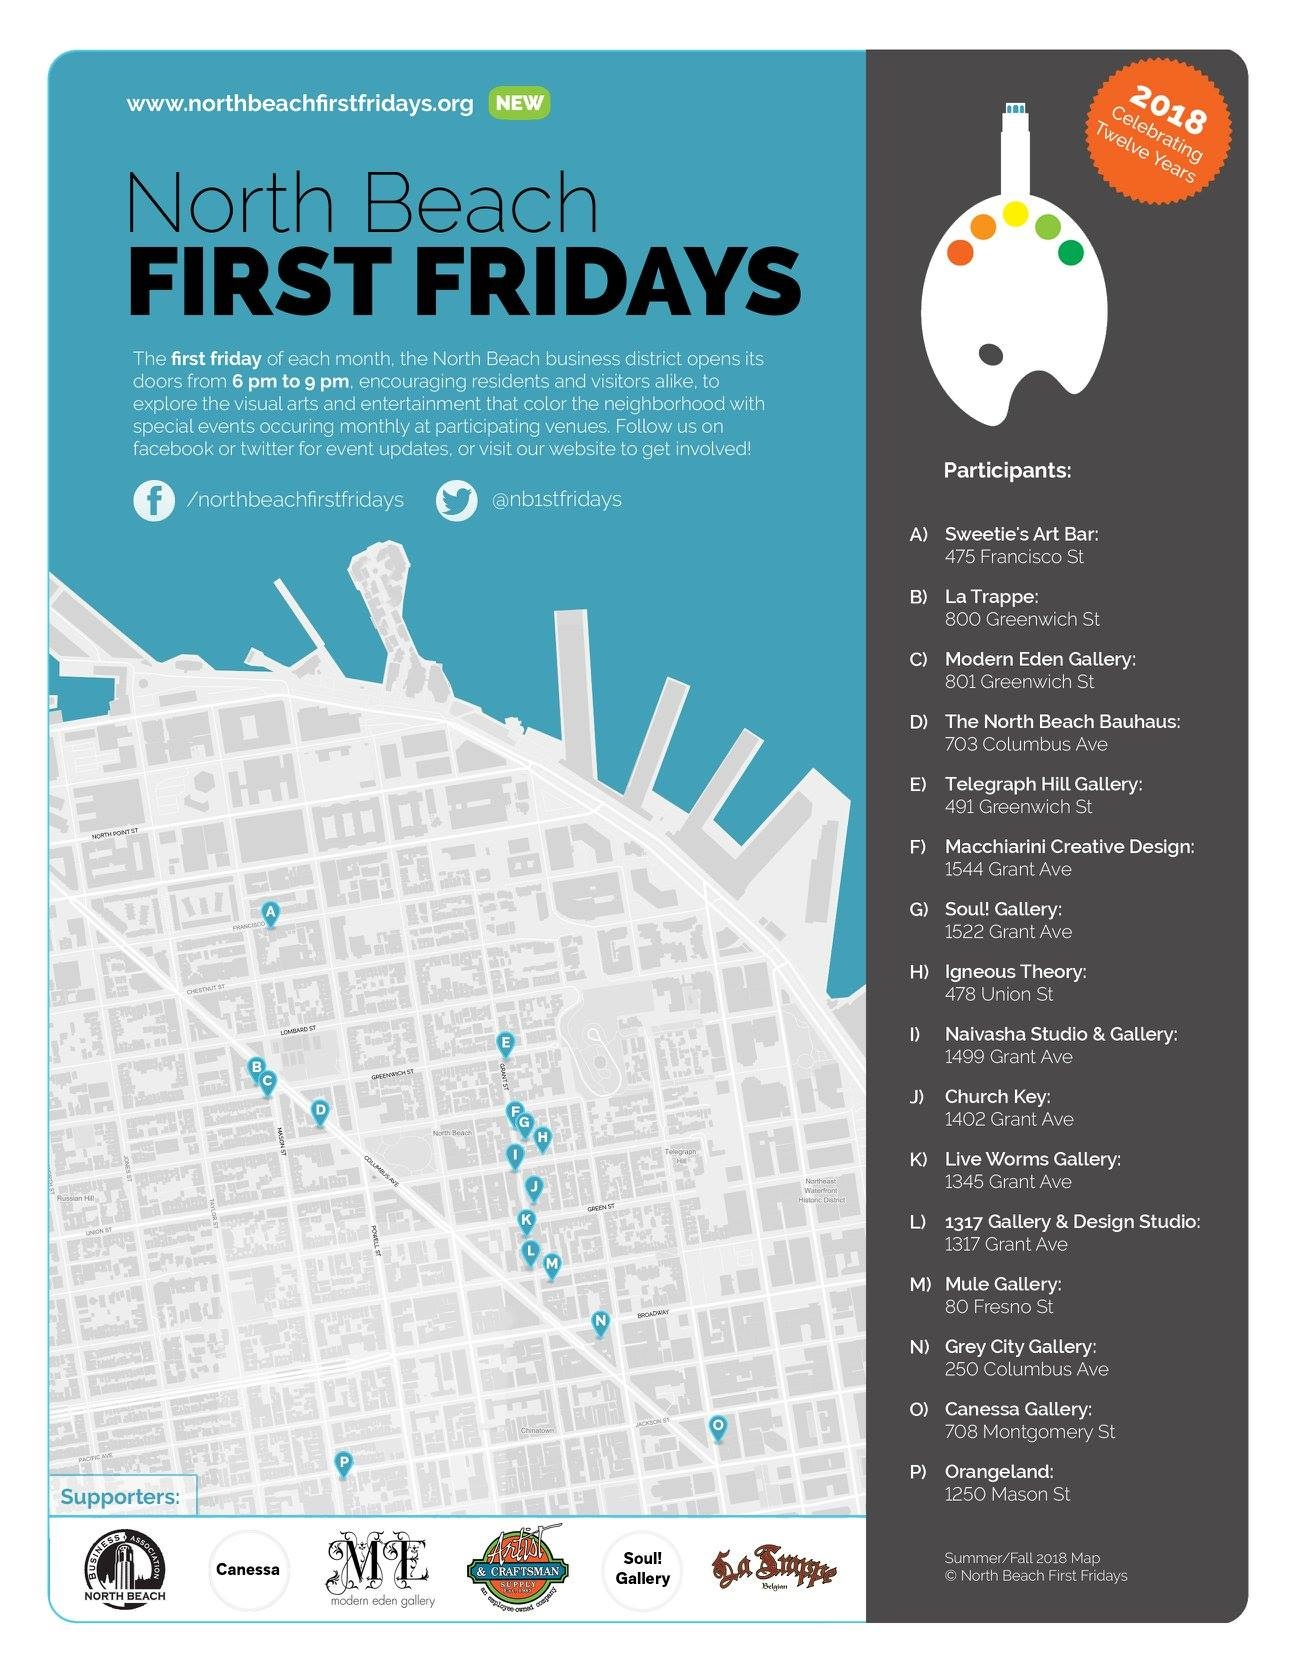 TBD - Apr 5, 2019 - North Beach First Fridays